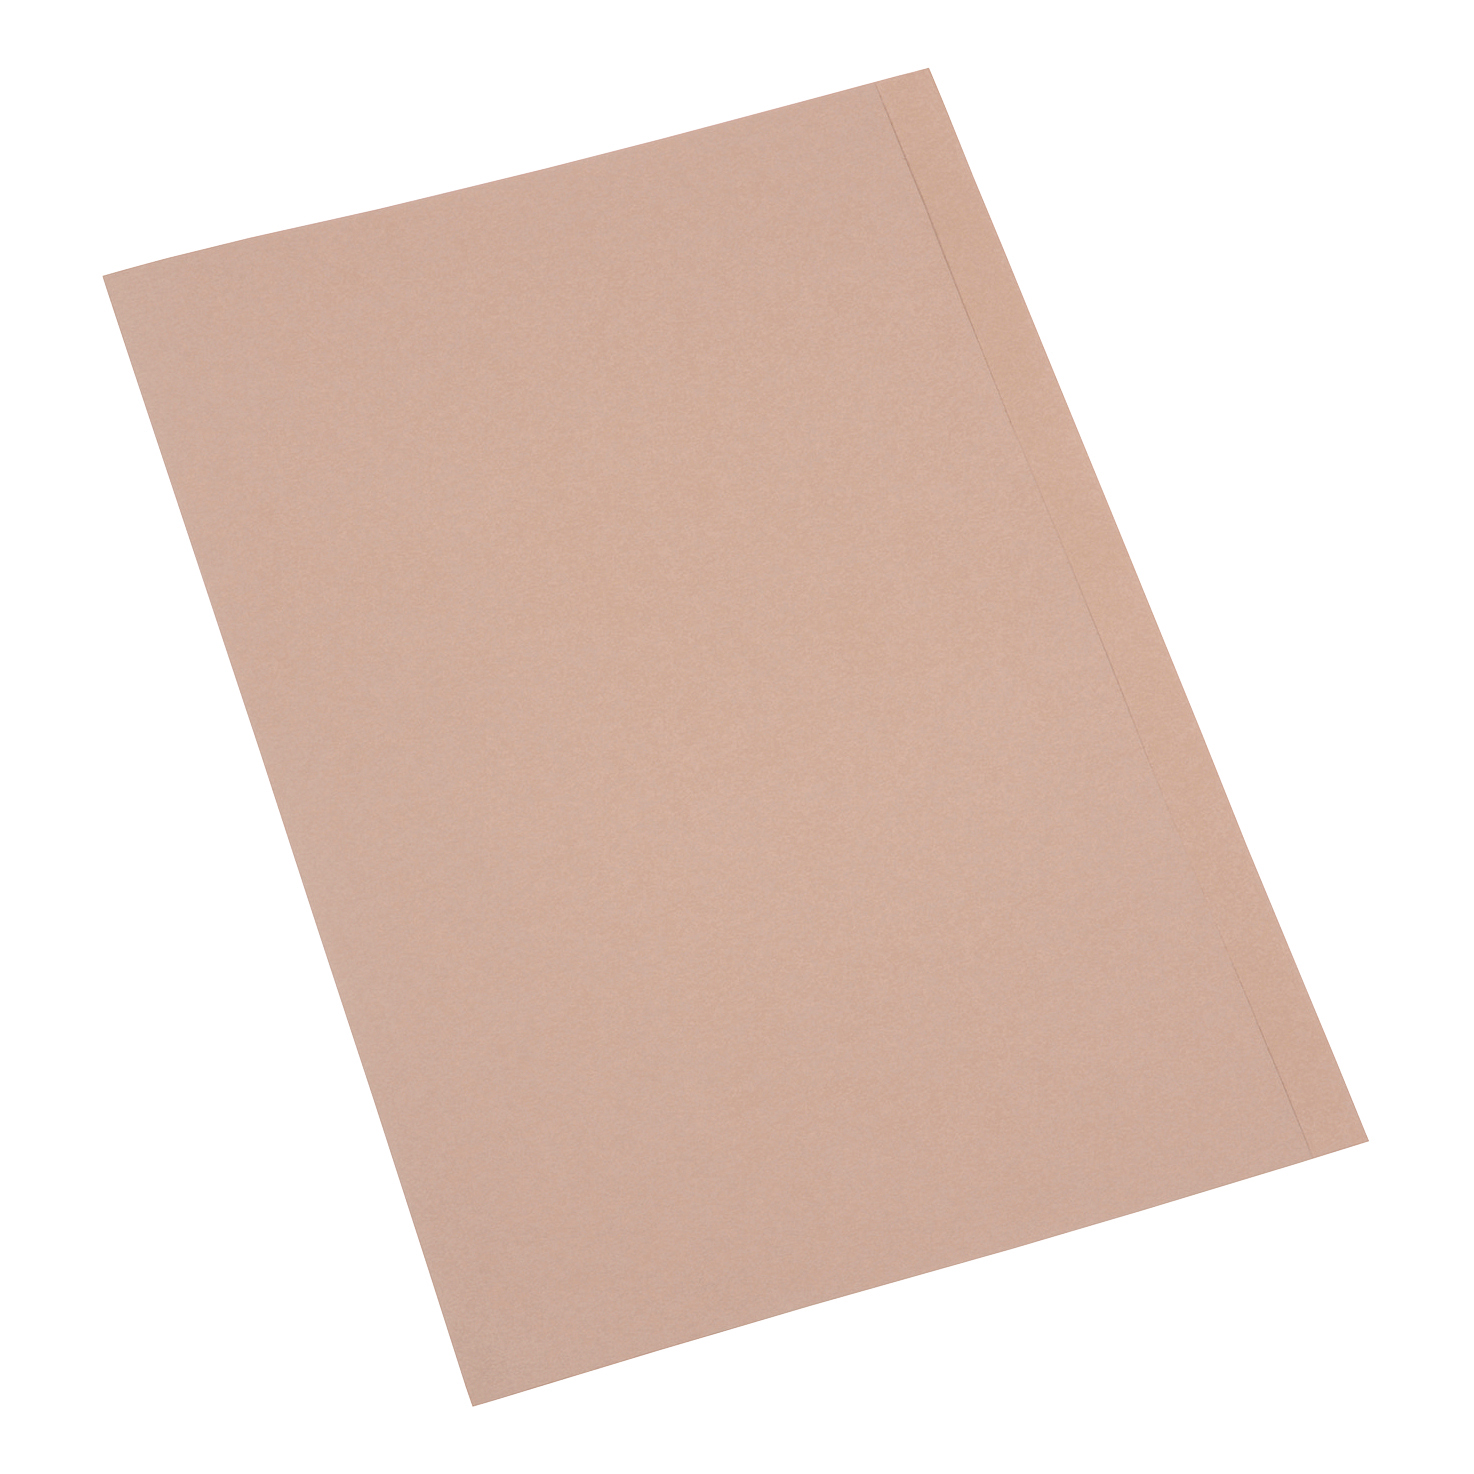 Square Cut Folders 5 Star Office Square Cut Folder Recycled 250gsm Foolscap Buff Pack 100